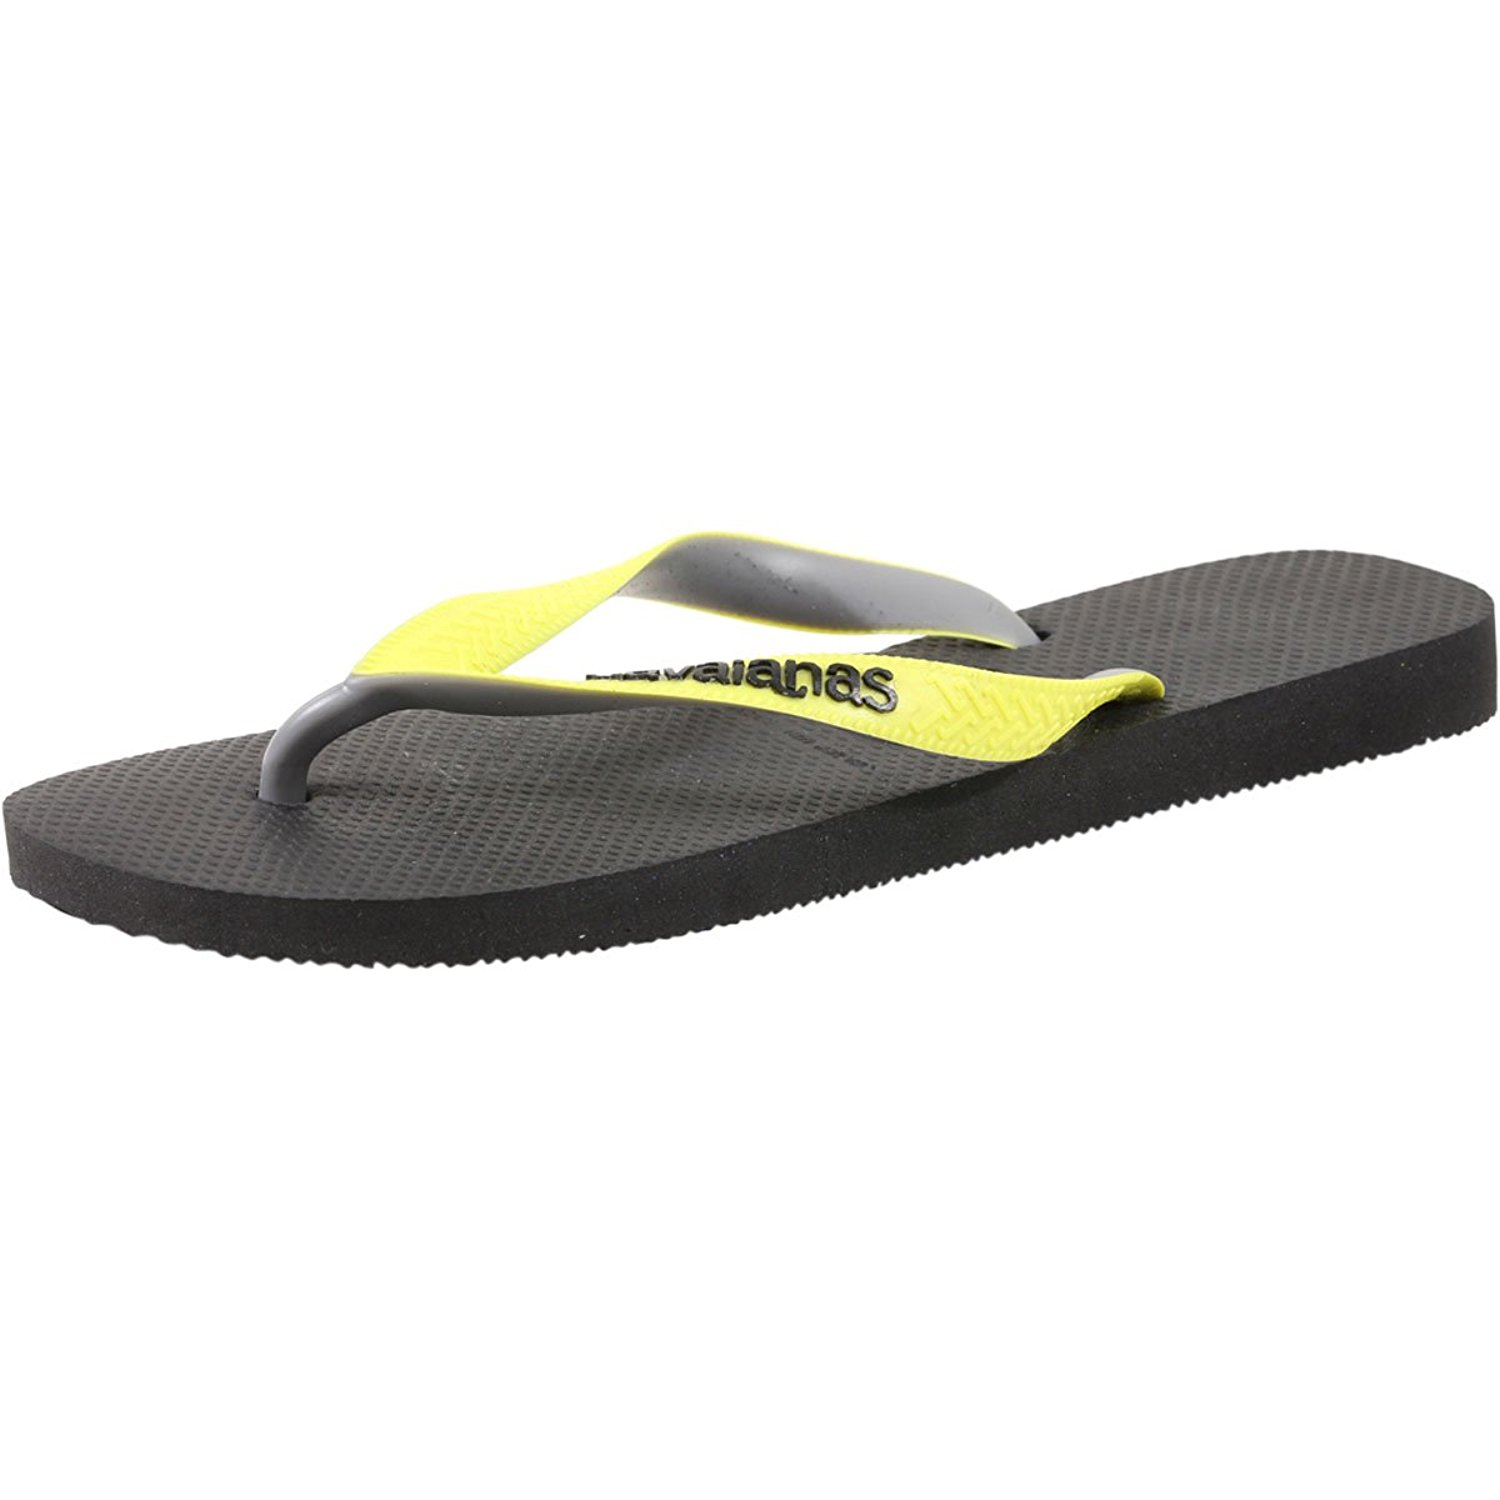 29a1196bee6b Details about Havaianas Women s Top Mix Sandal Black Neon Yellow